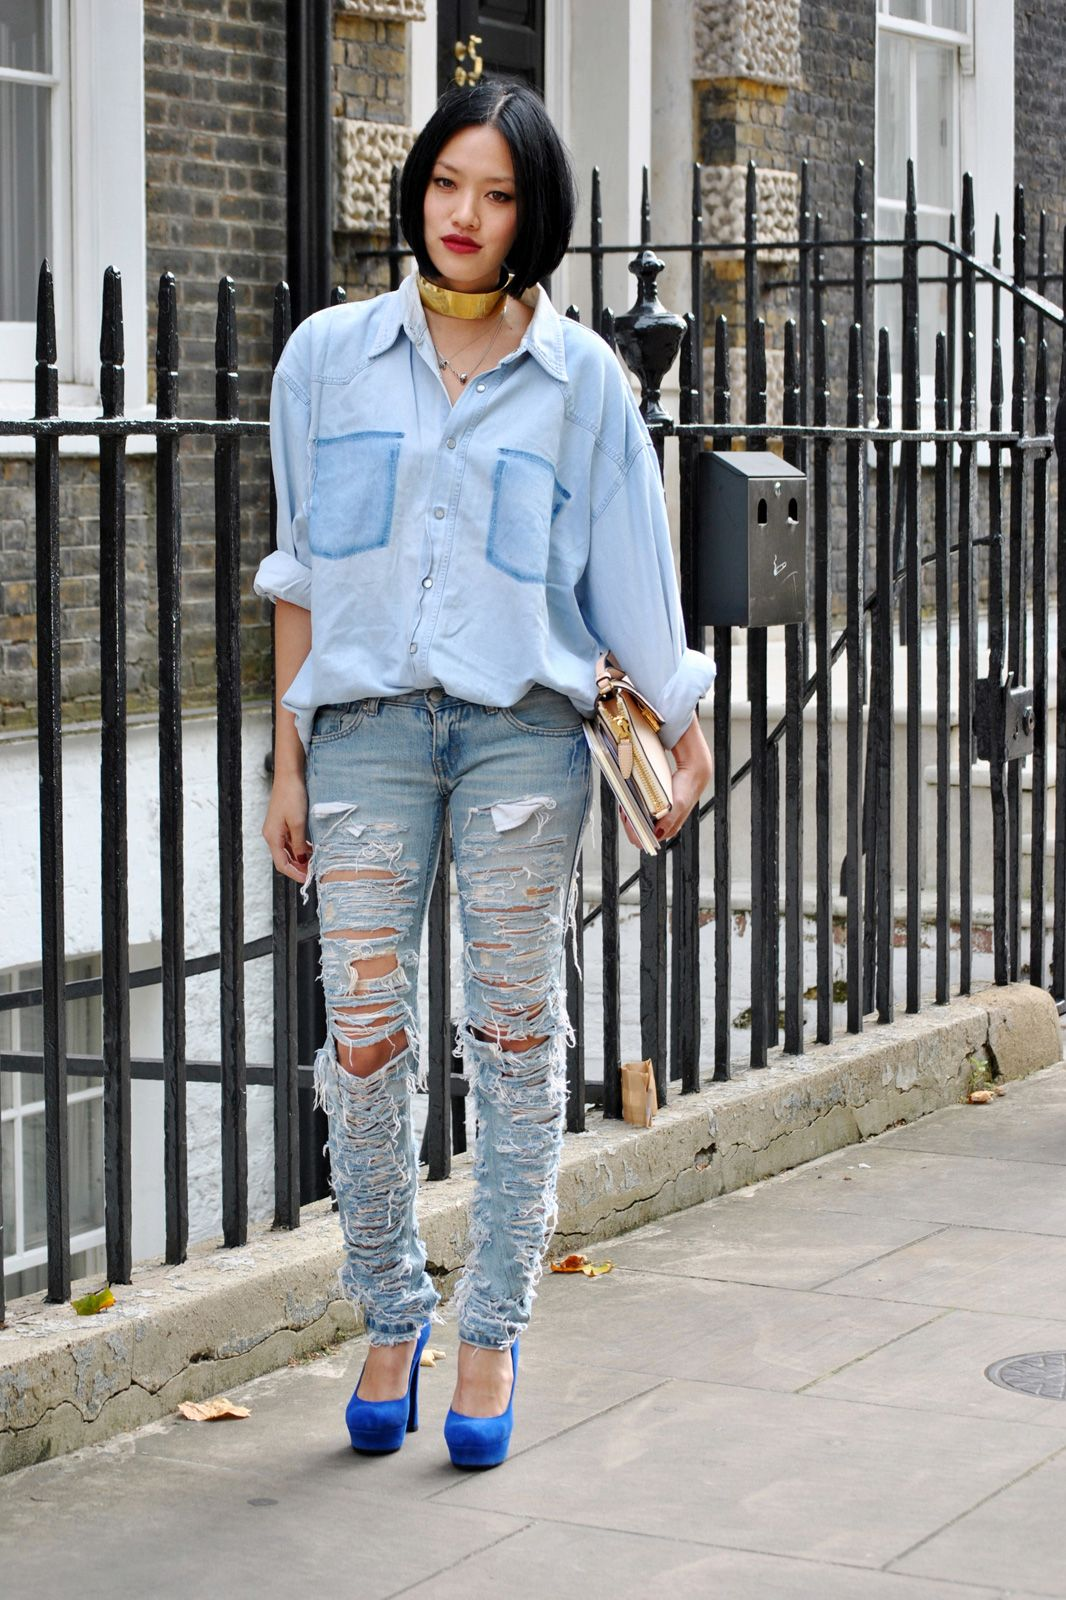 Daring and fashionable - jeans with holes 23